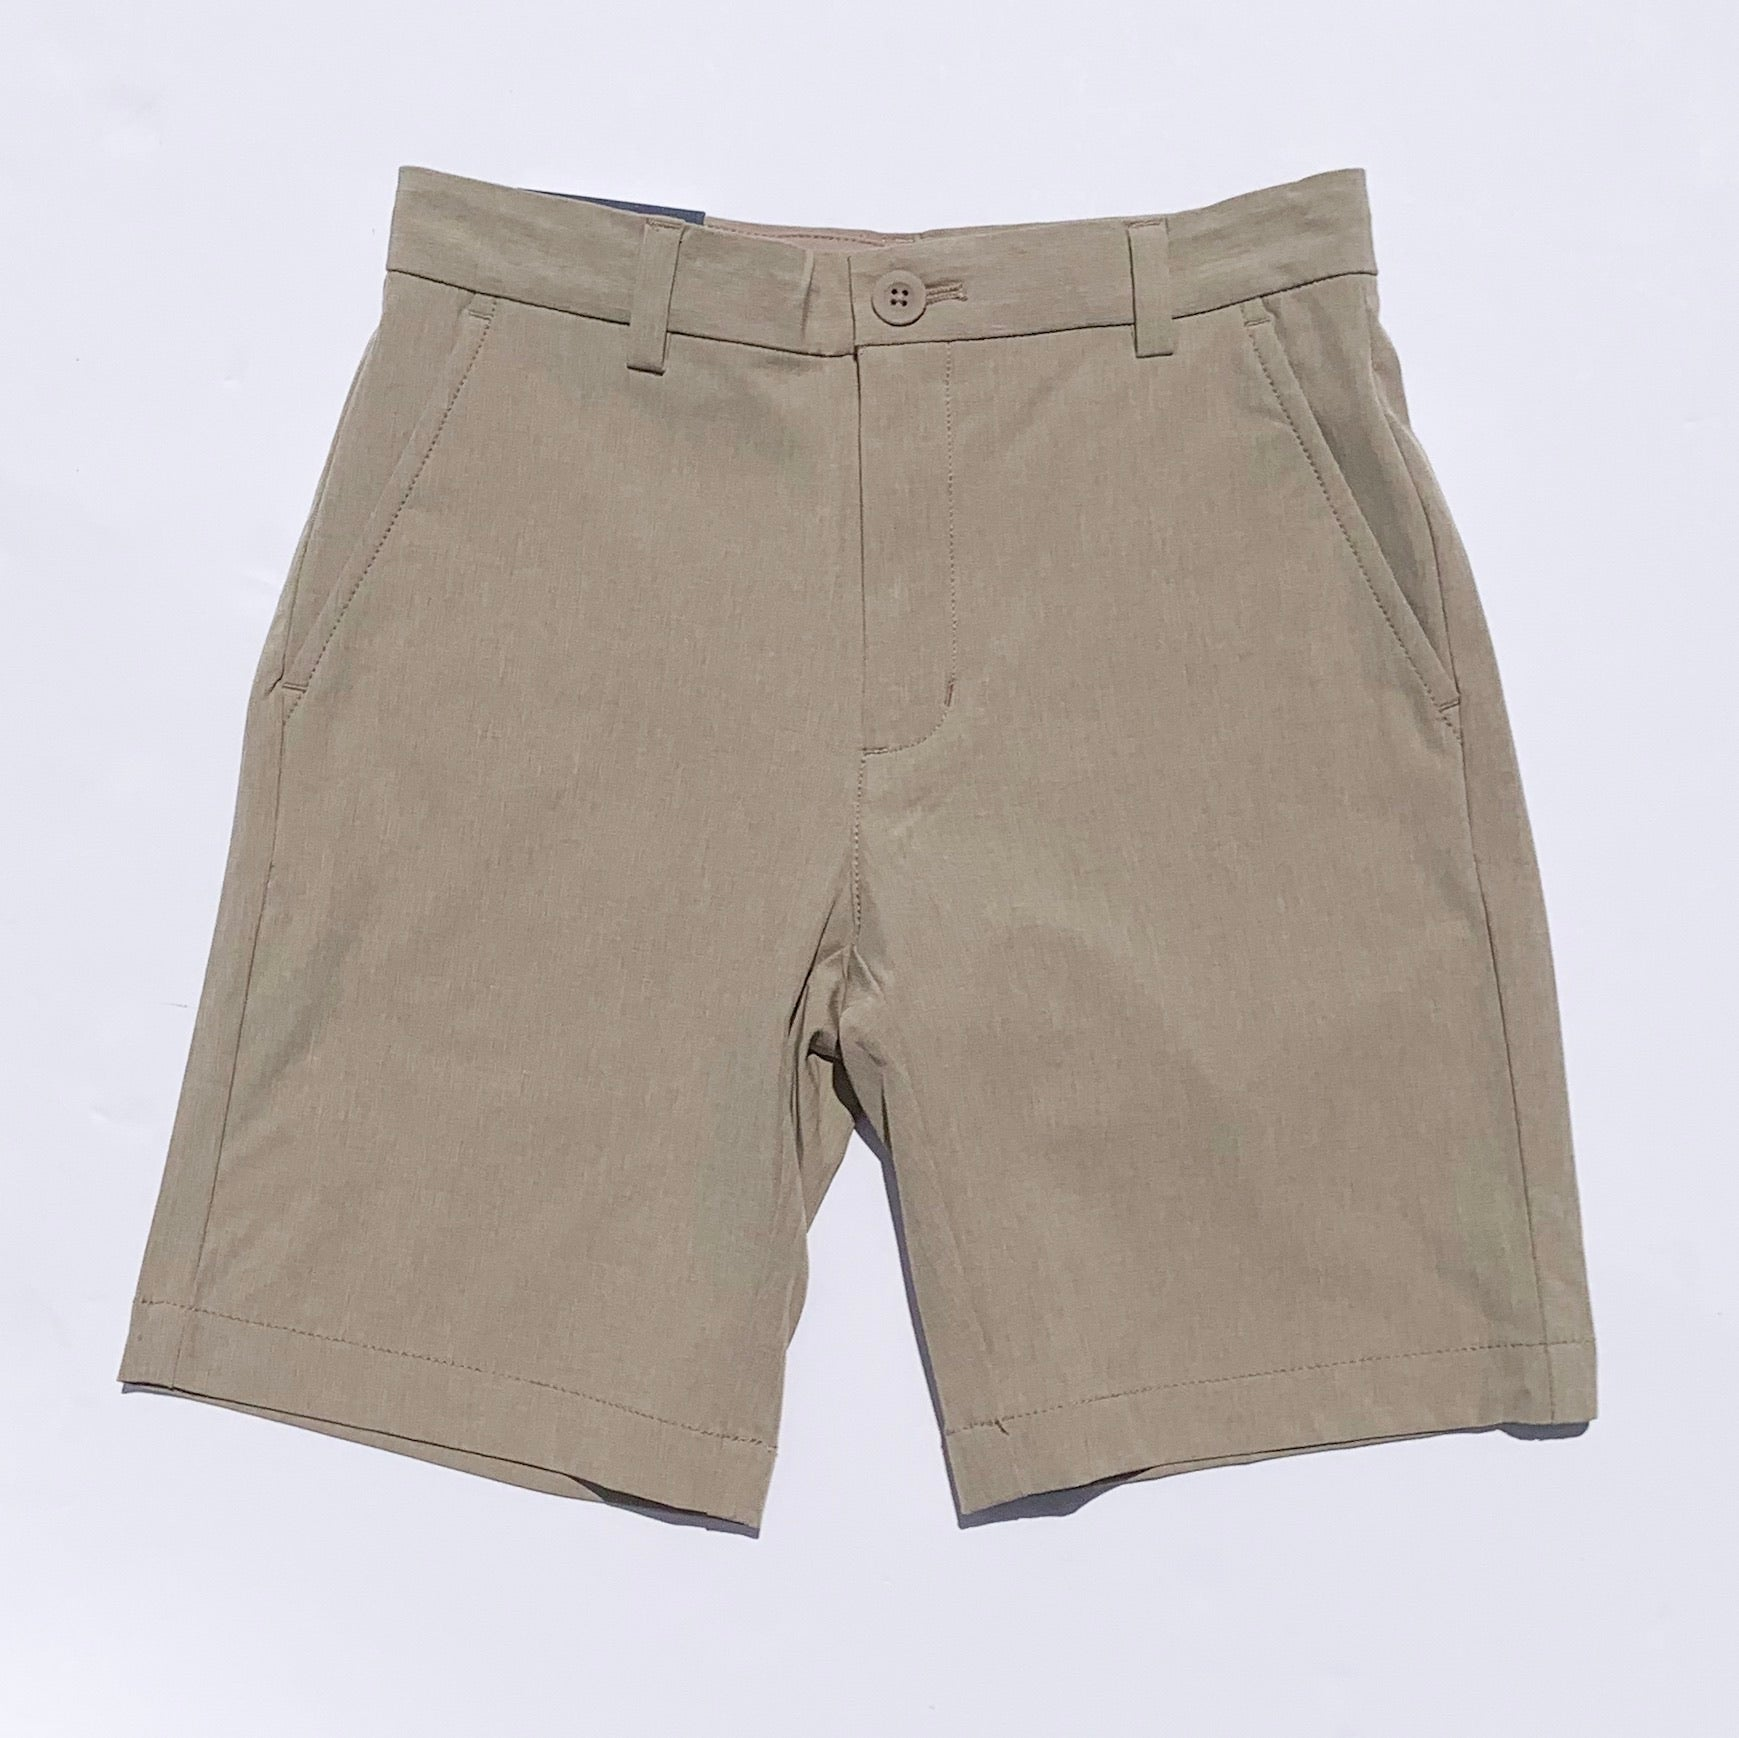 Vineyard Vines Boys New Performance Breaker Shorts - Khaki